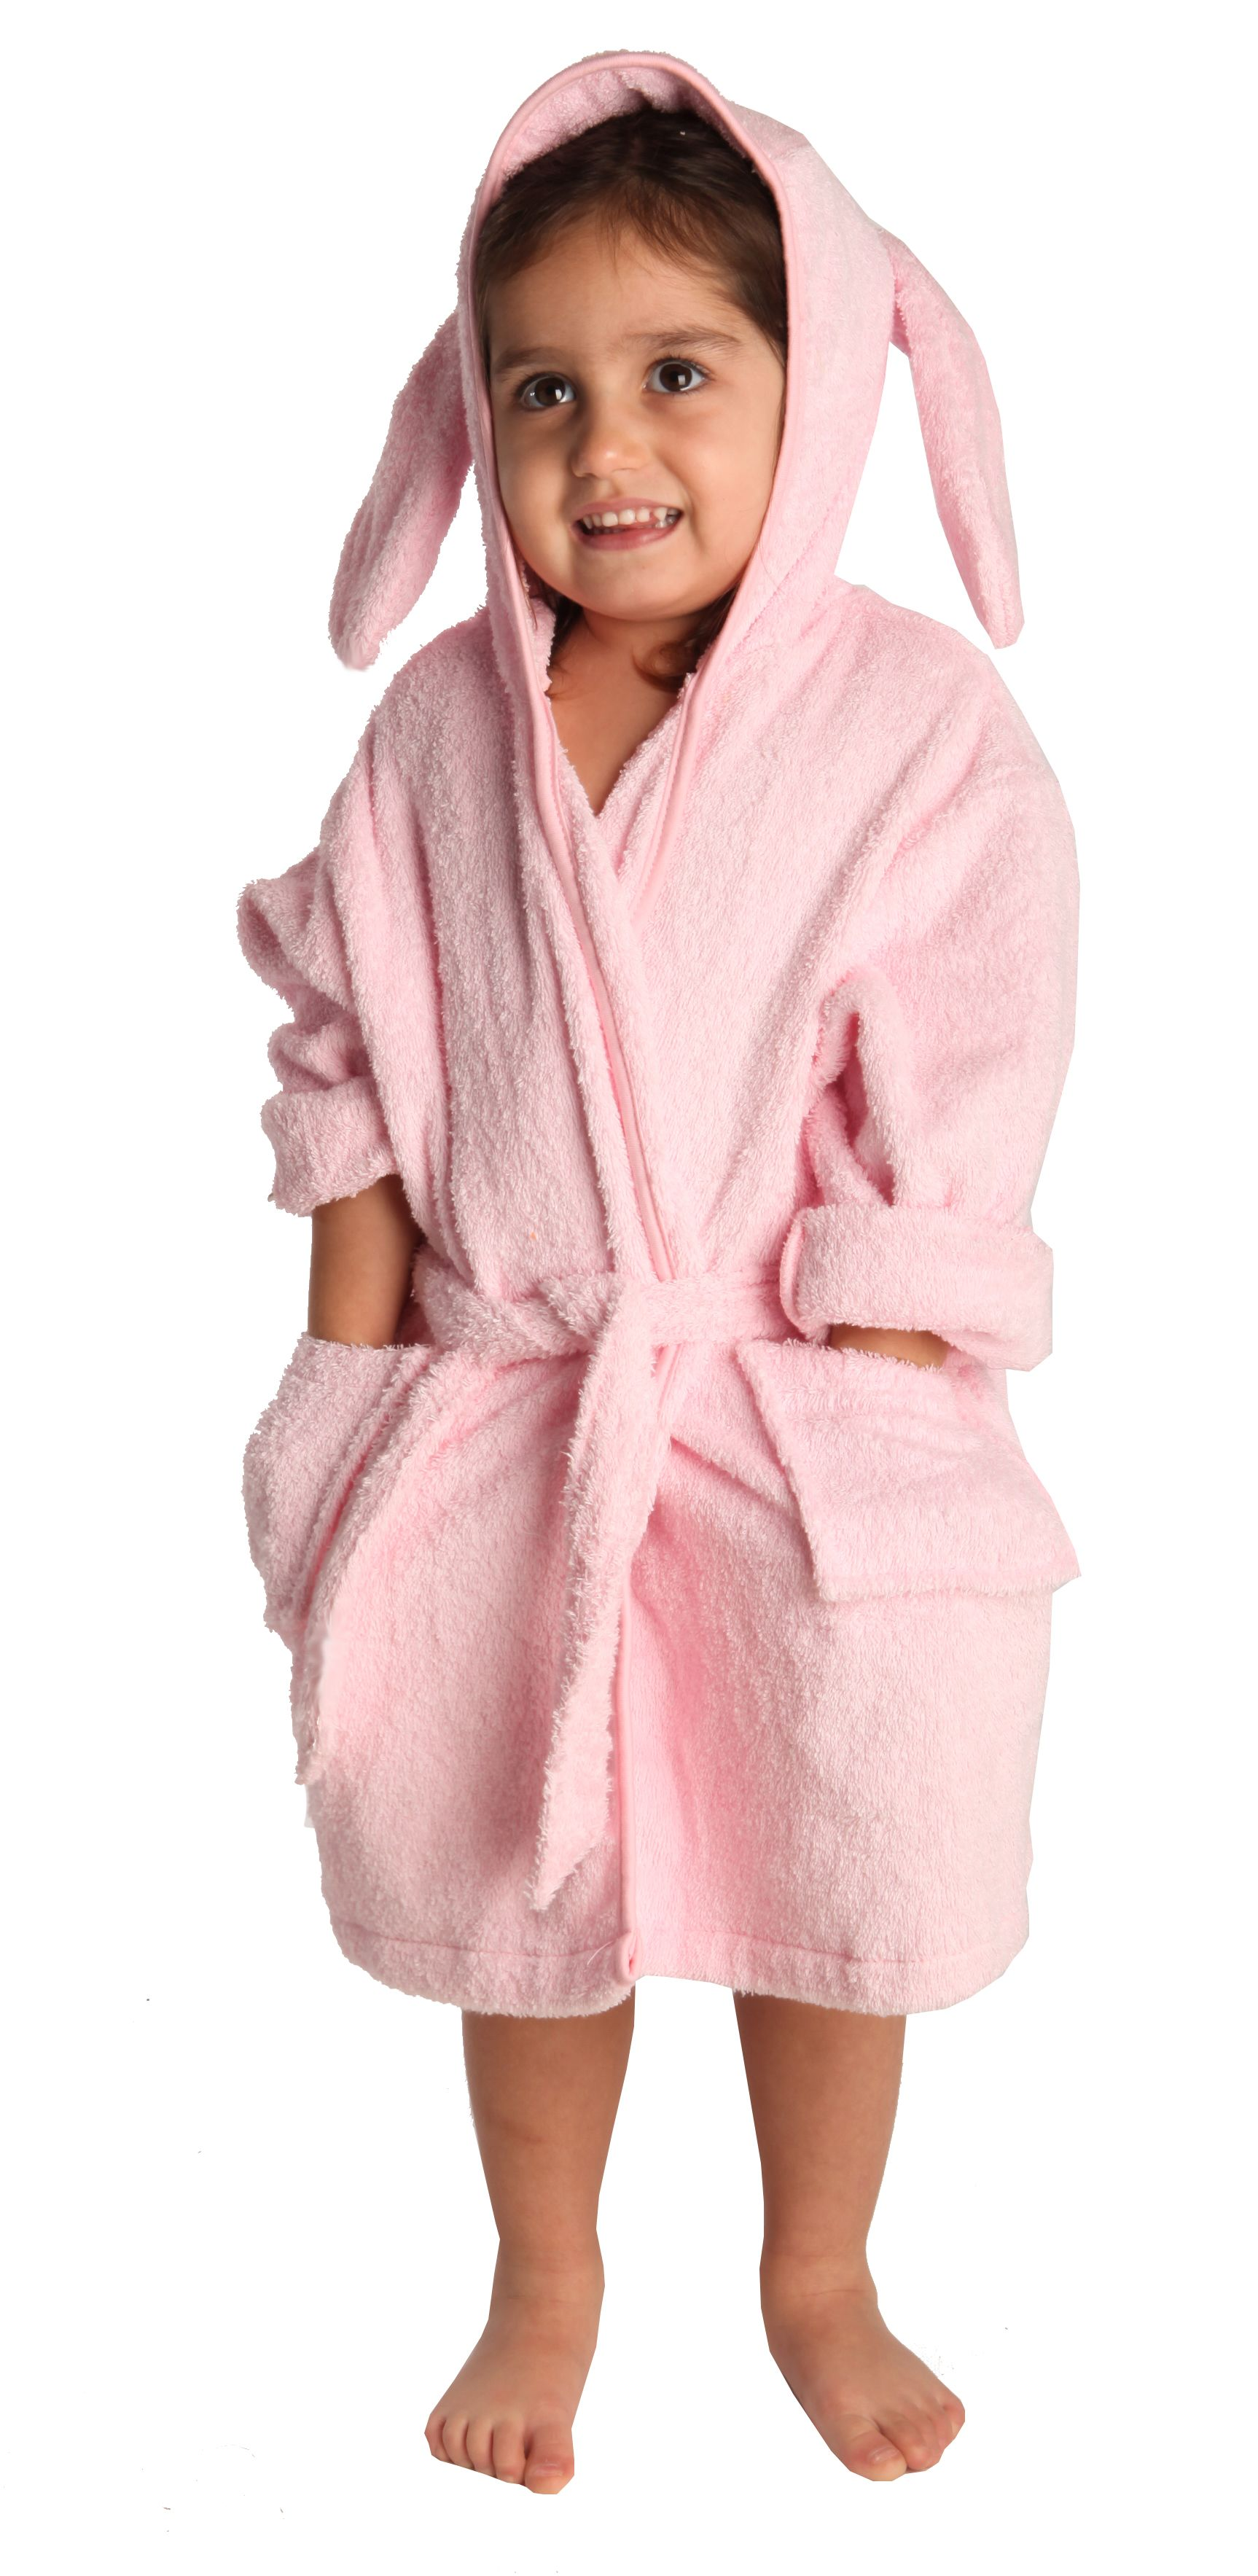 Cuddly bath robe with animal hood